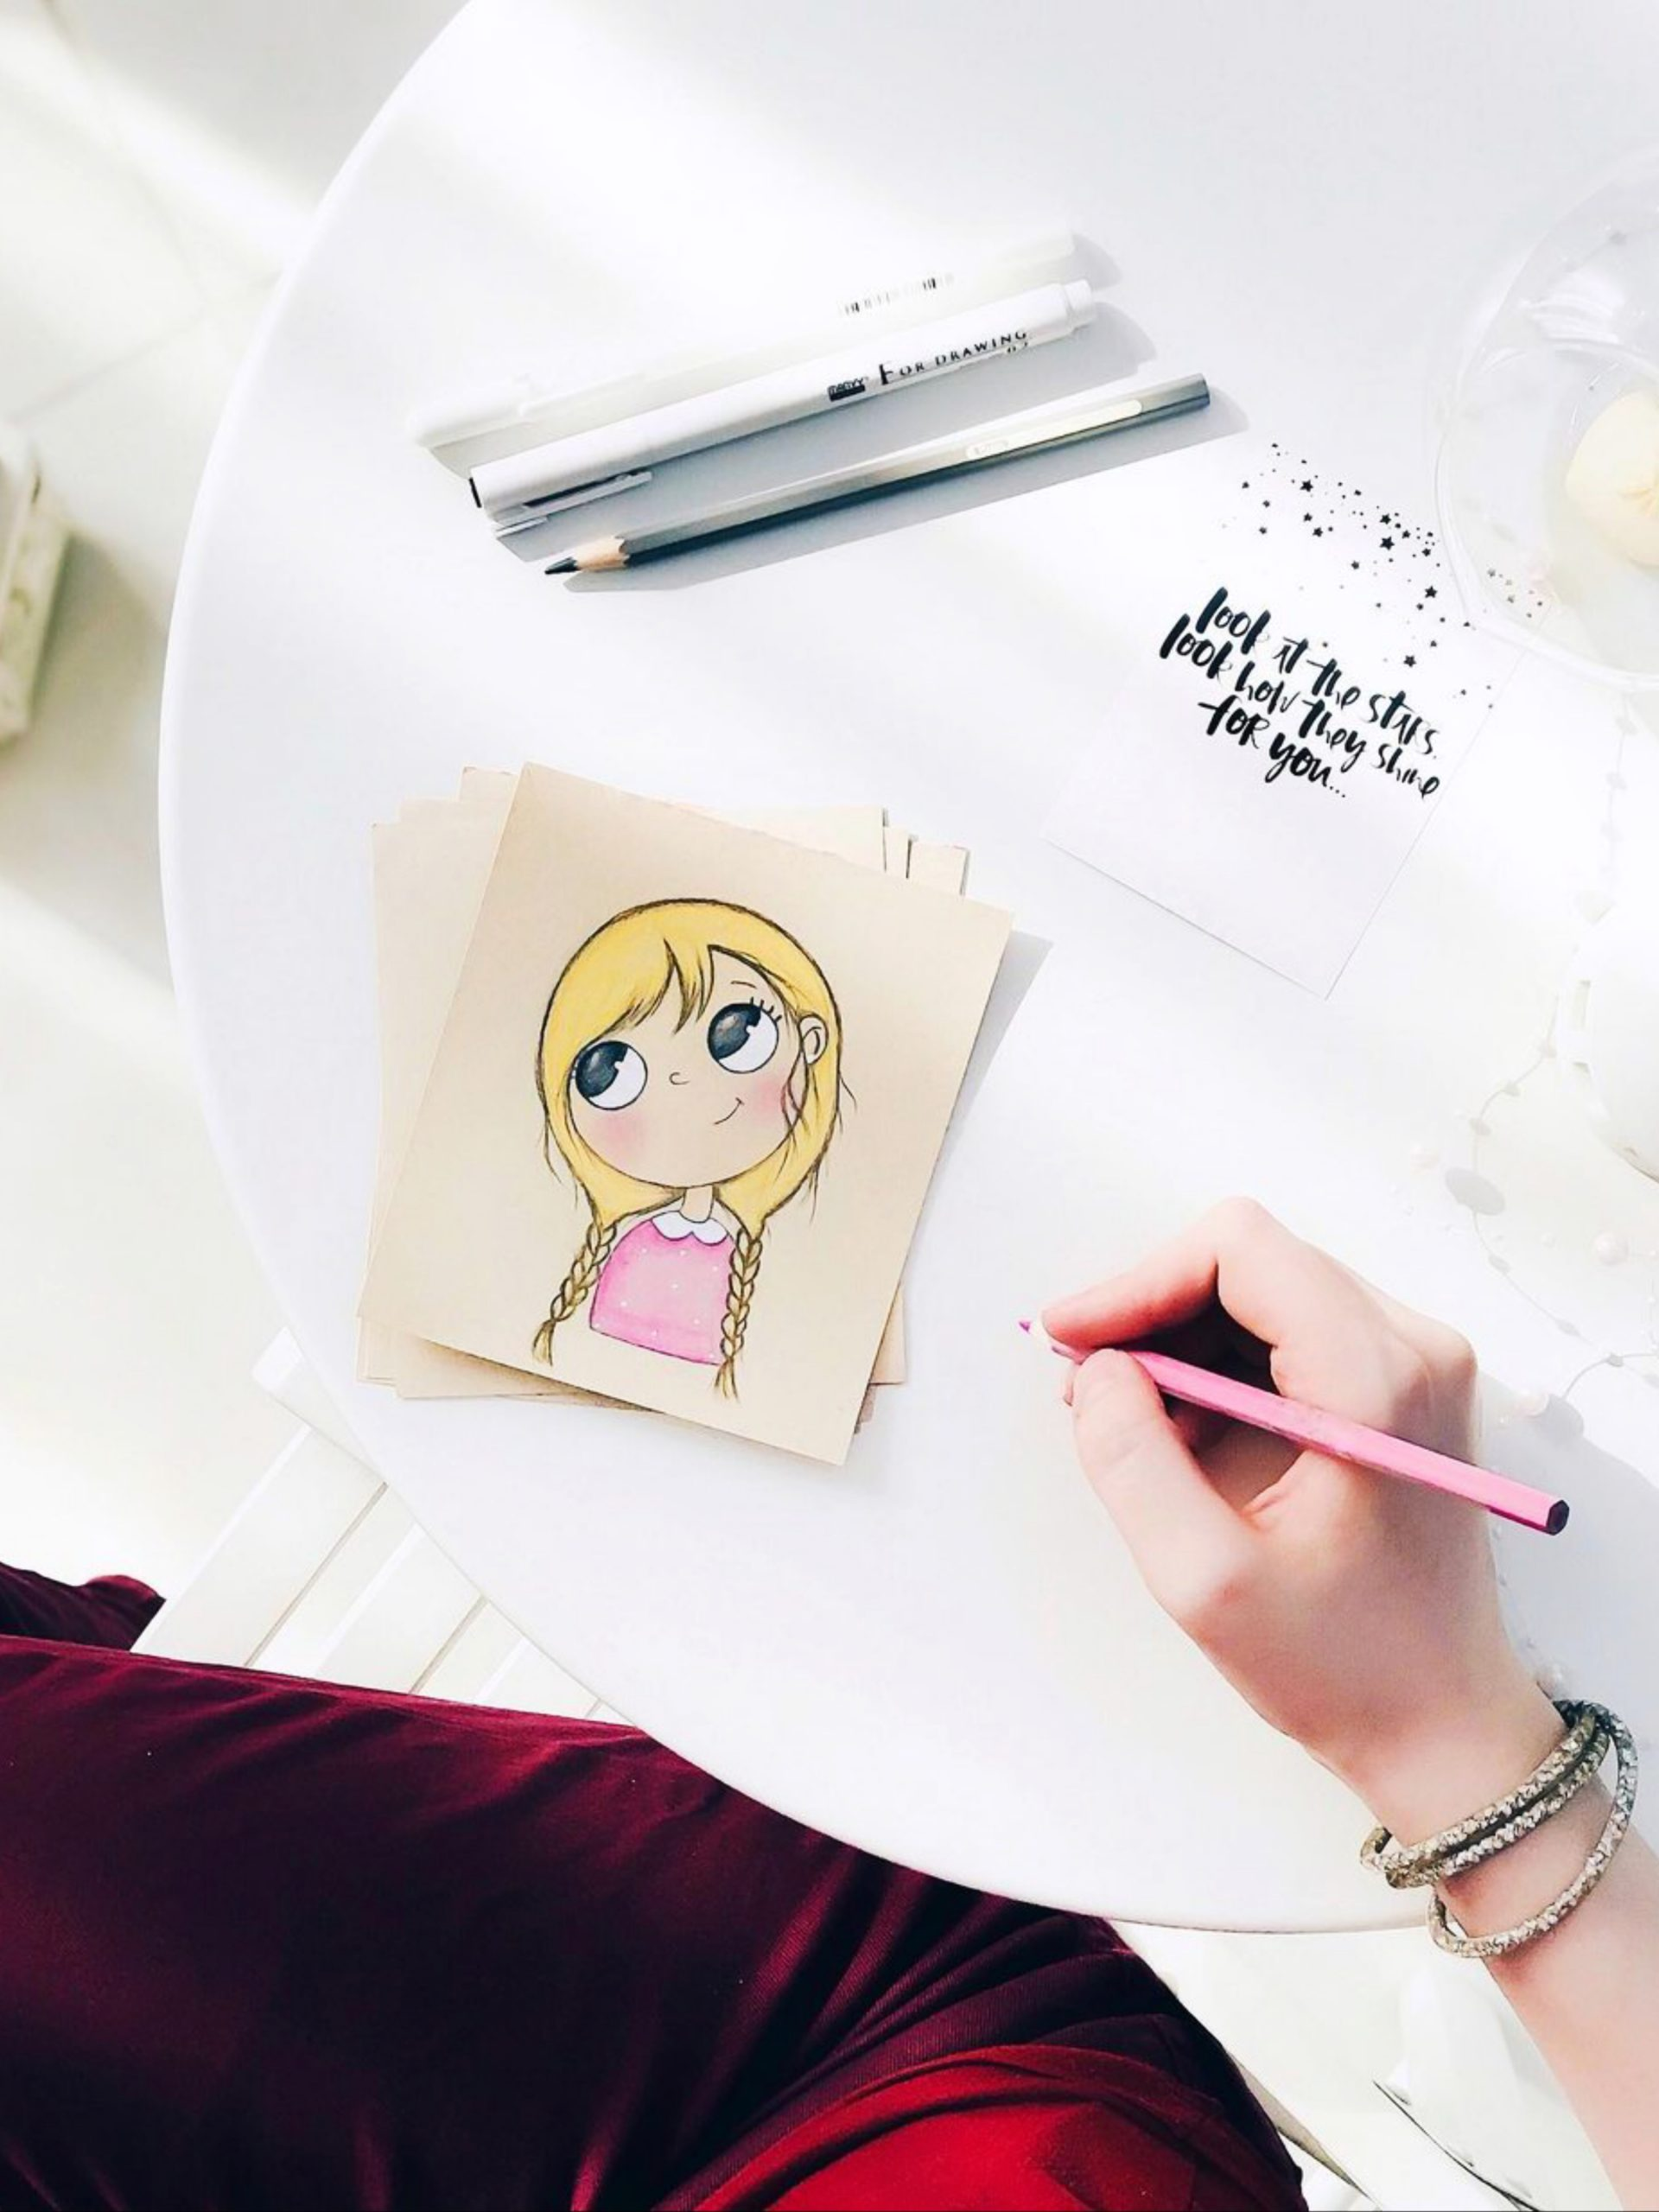 Making a girl's drawing